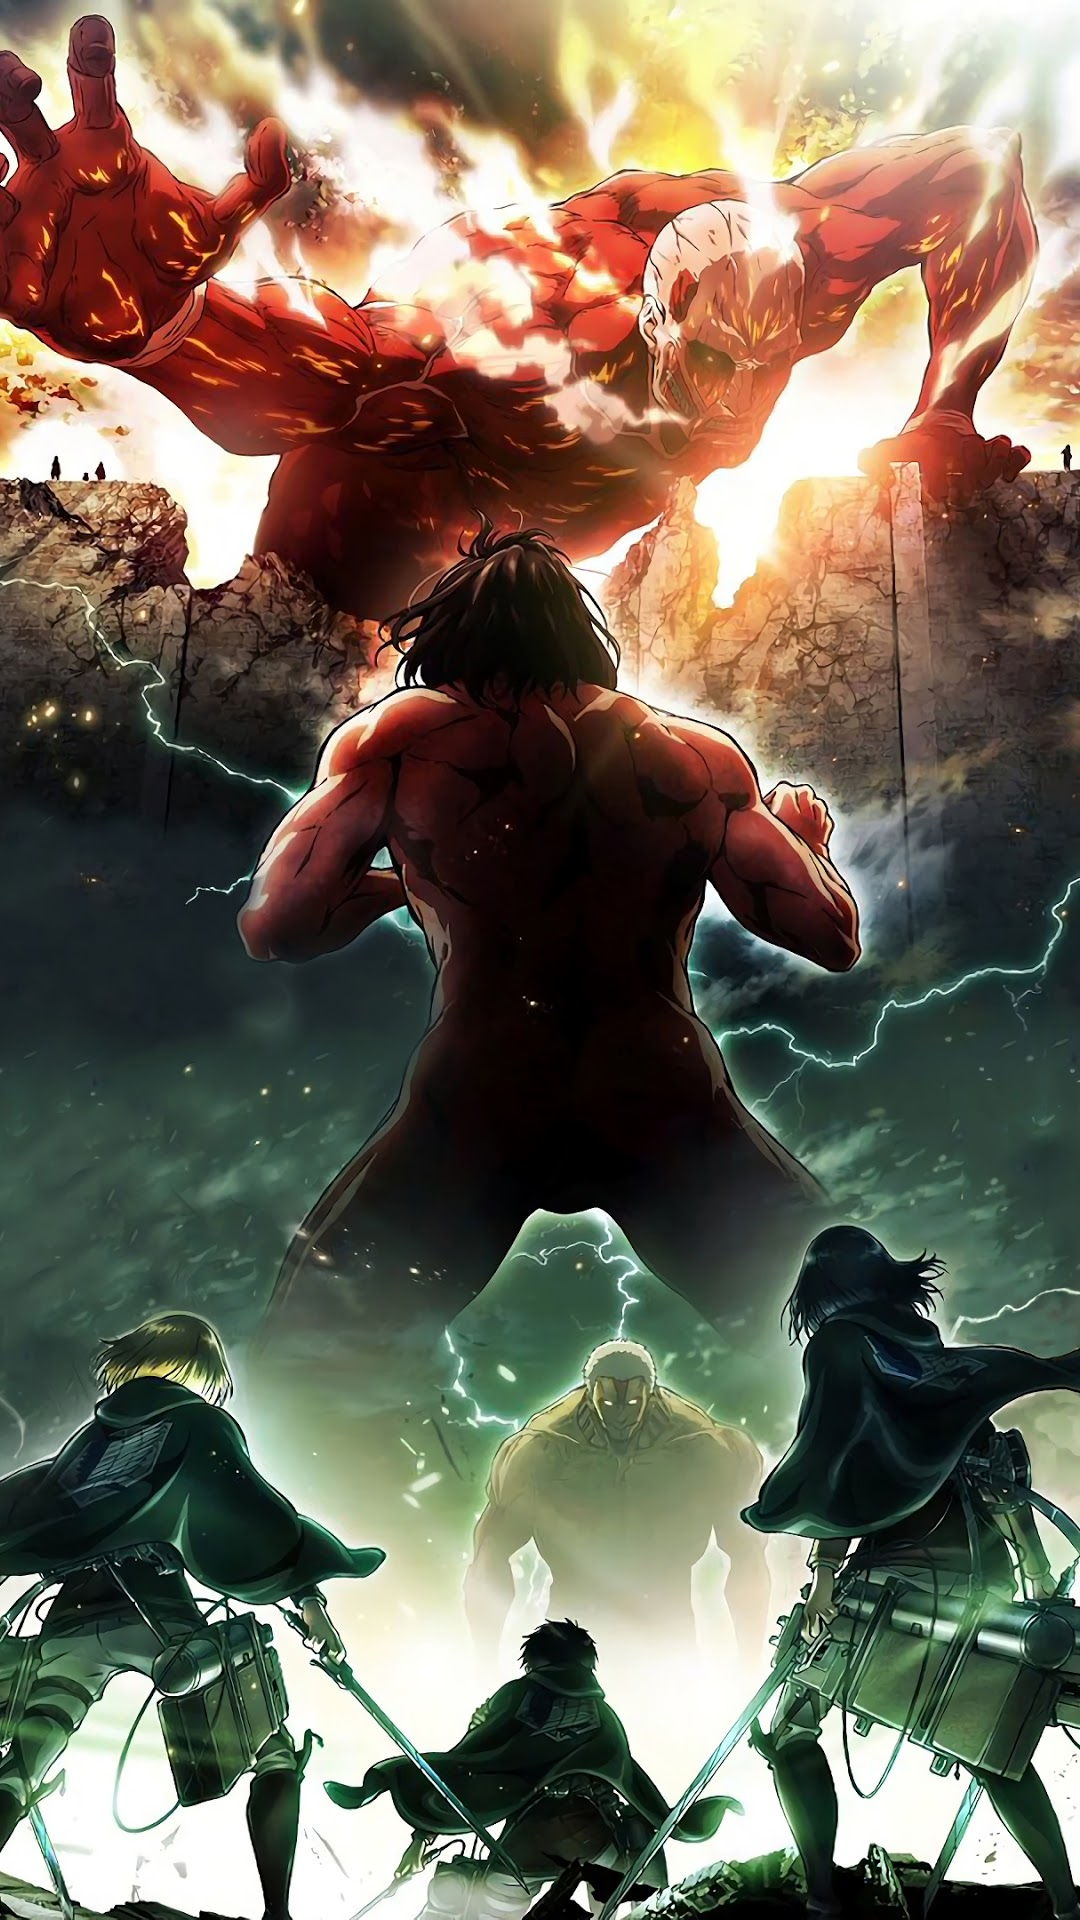 Iphone Attack On Titan Wallpaper - KoLPaPer - Awesome Free ...